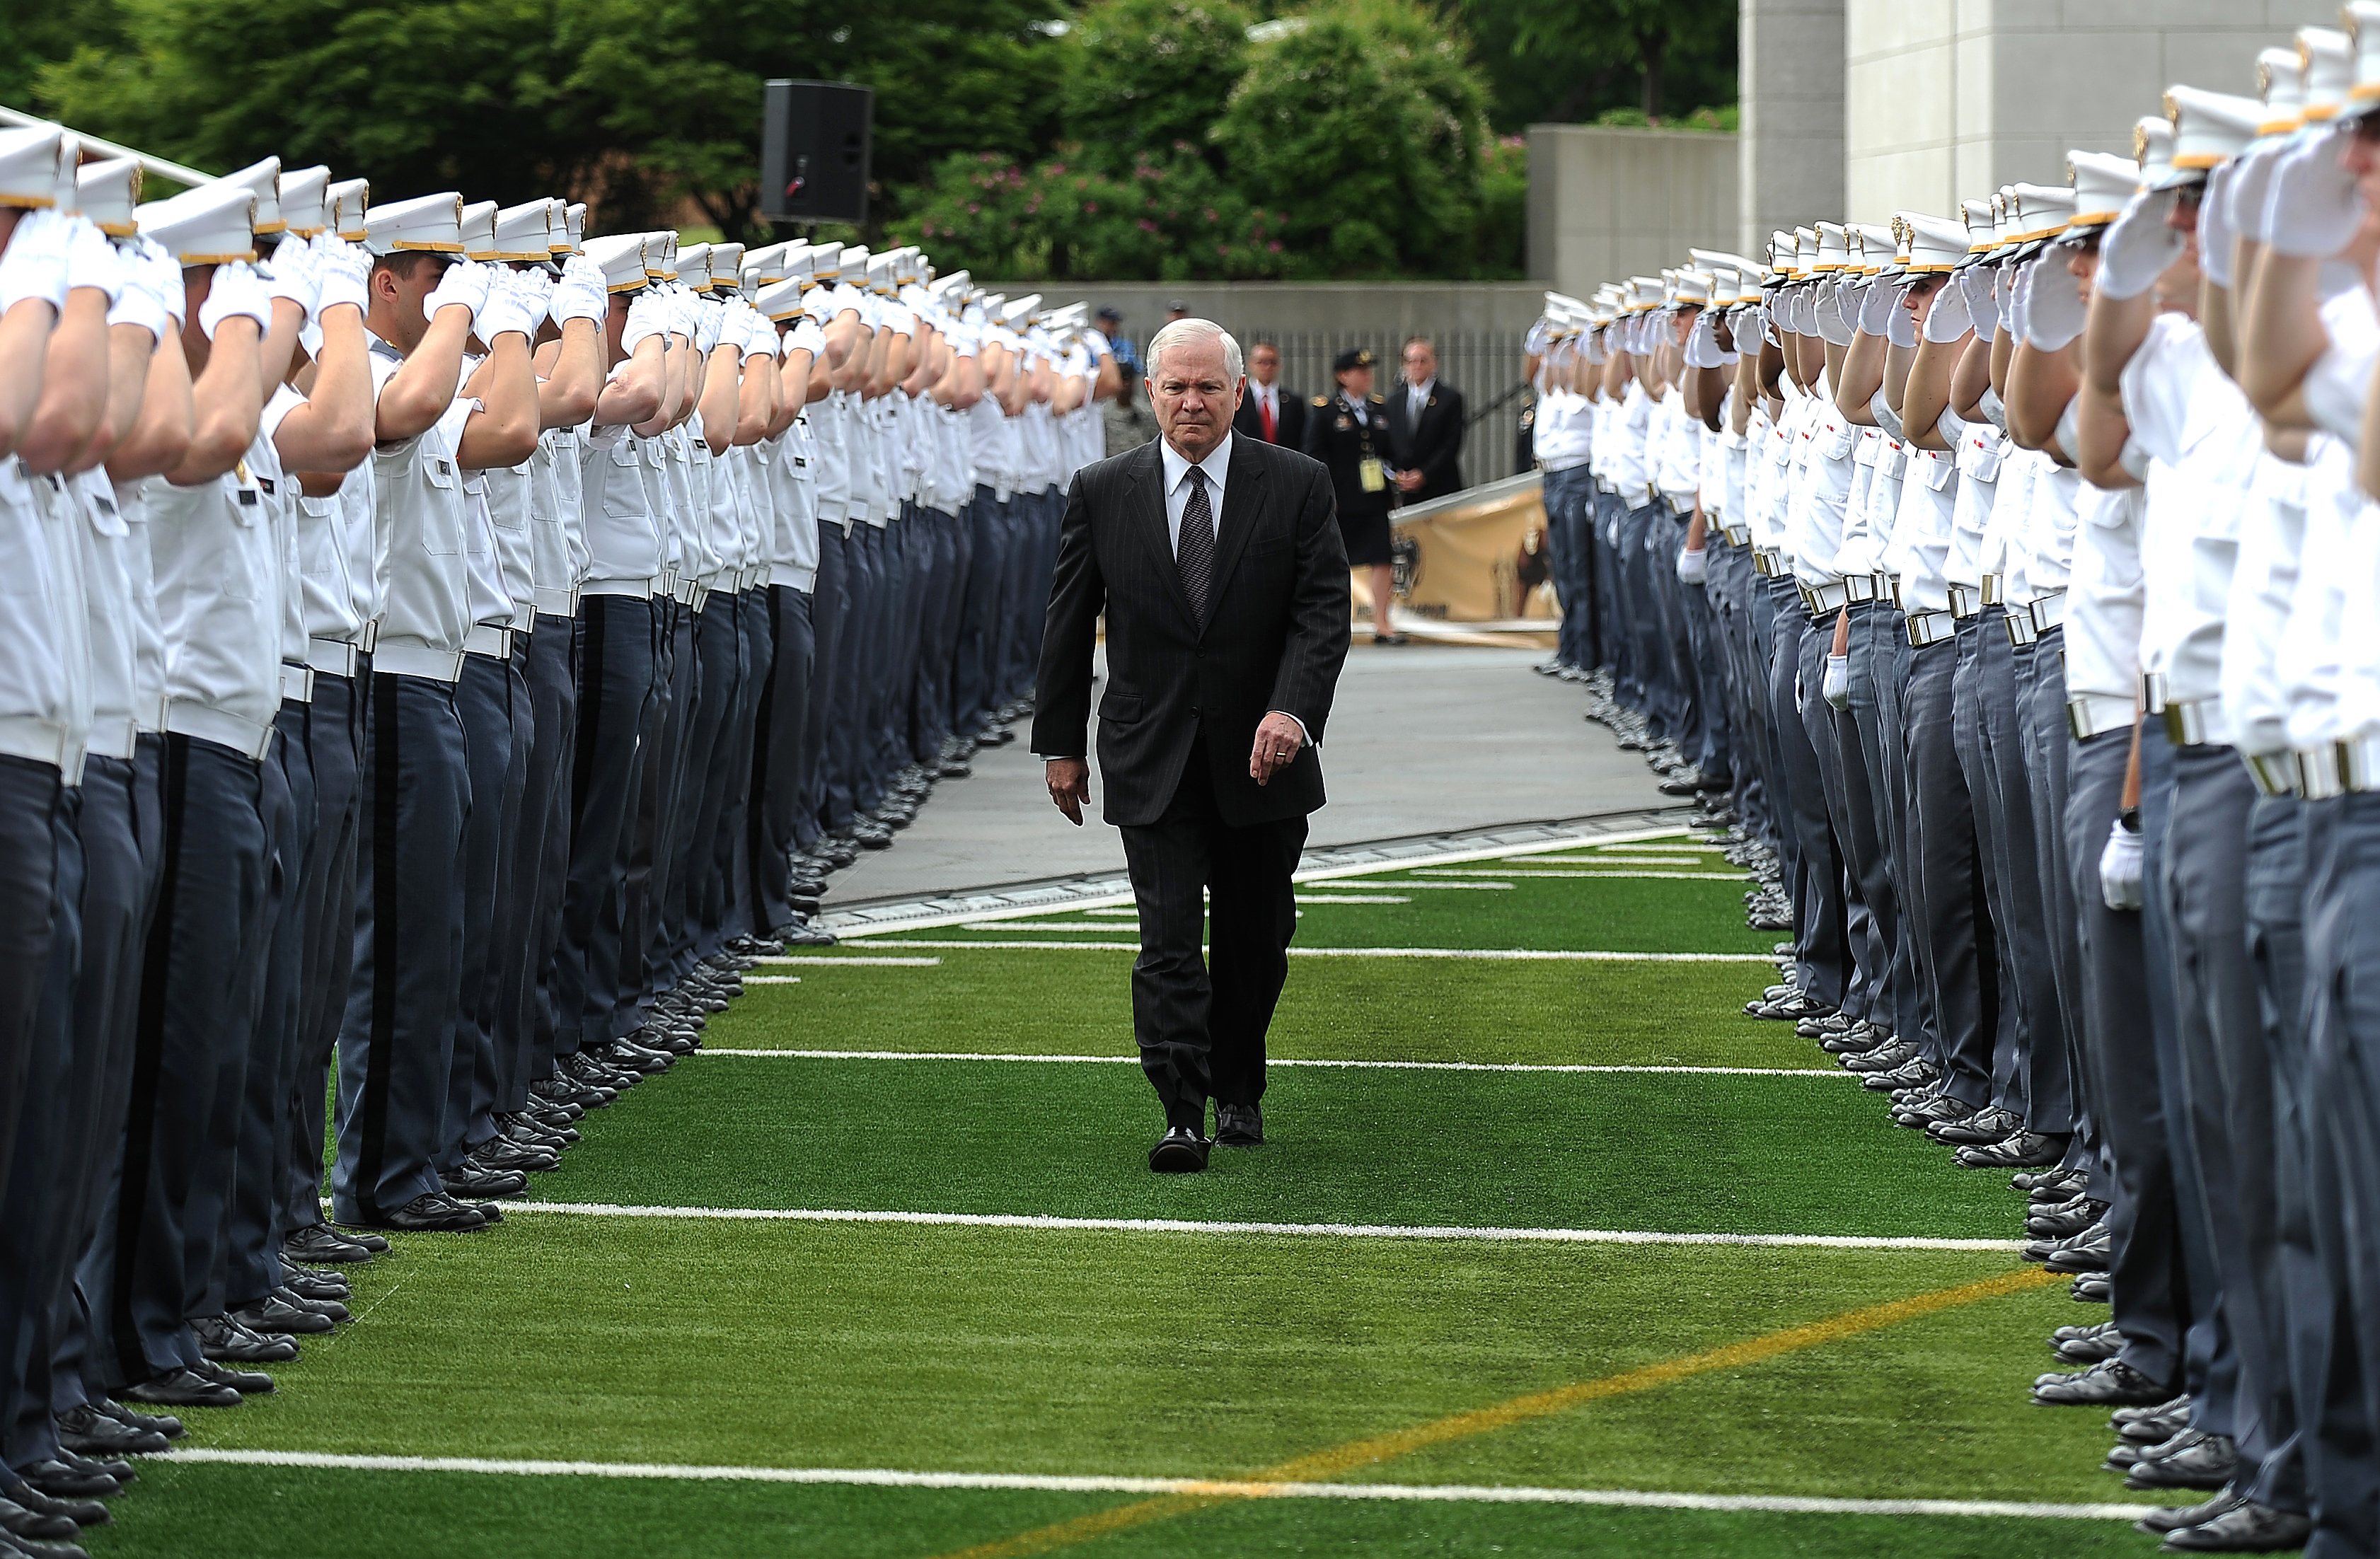 west point admissions essay u s department of > photos > photo  u s department of > photos > photo essays > essay view hi res continuing the tradition leading innovation westpoint